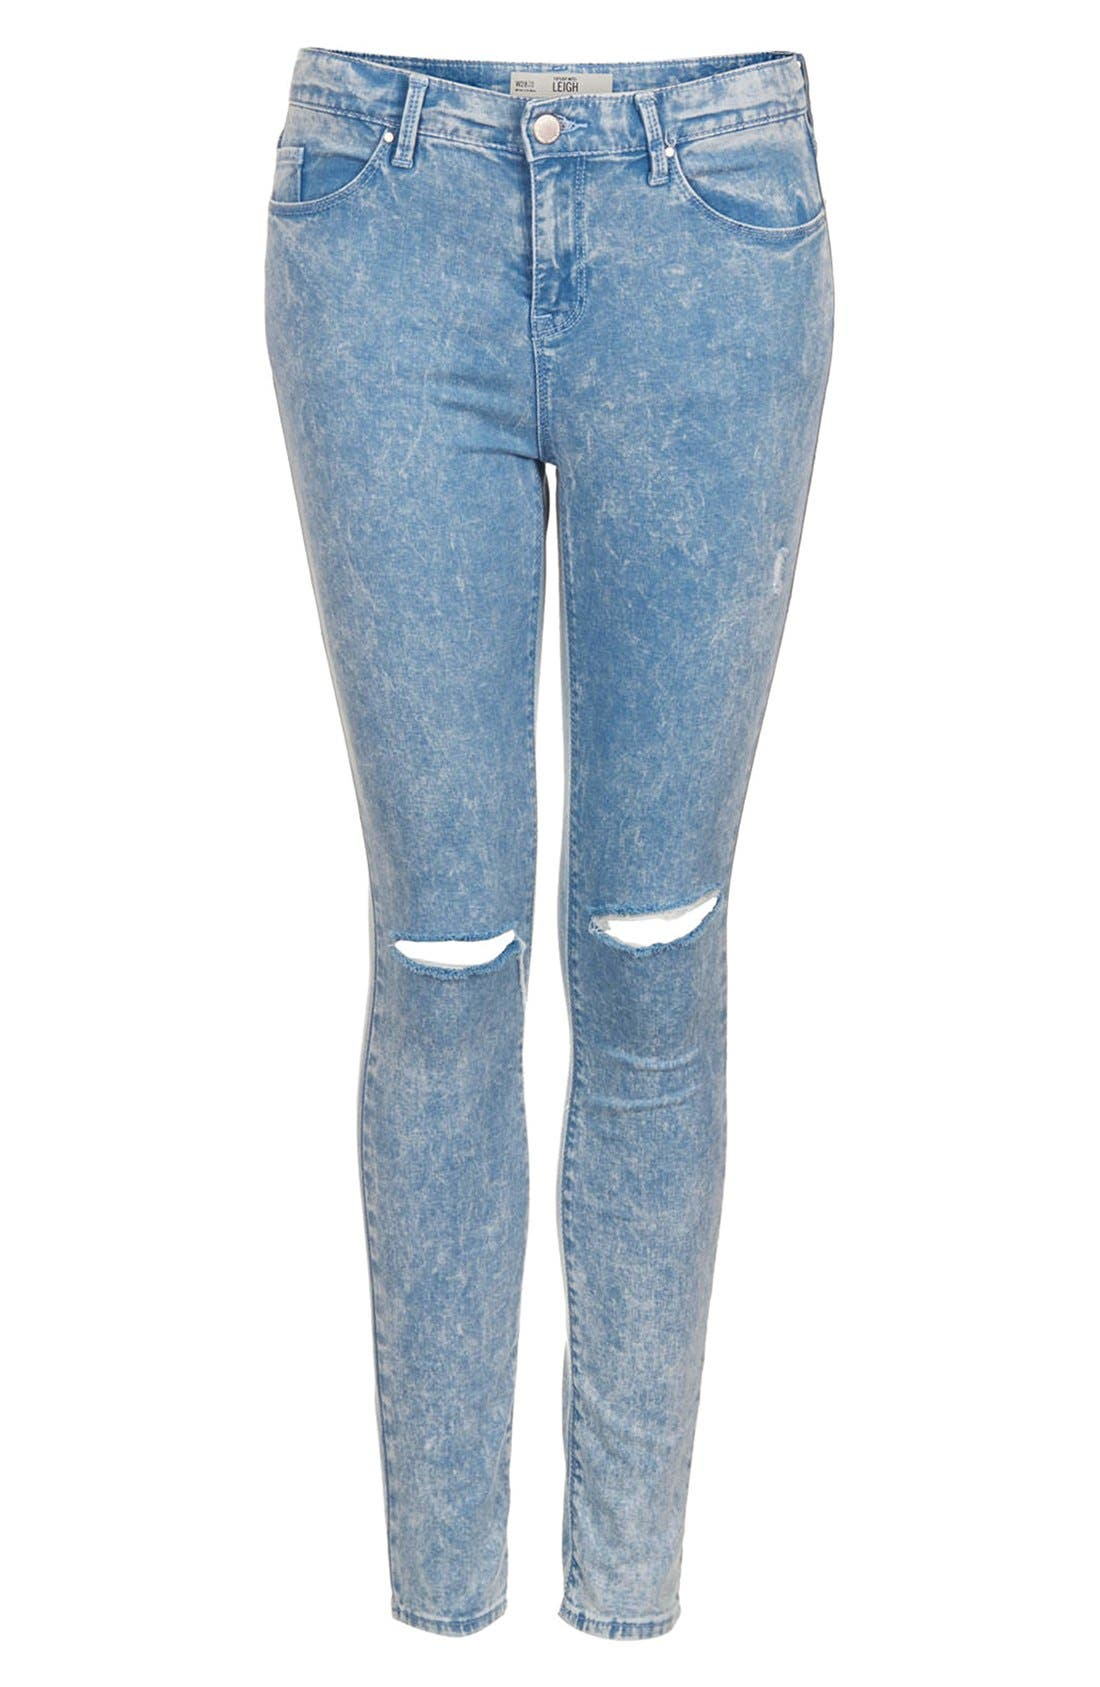 Alternate Image 3  - Topshop Moto 'Leigh' Acid Wash Ripped Skinny Jeans (Light Blue) (Regular & Short)